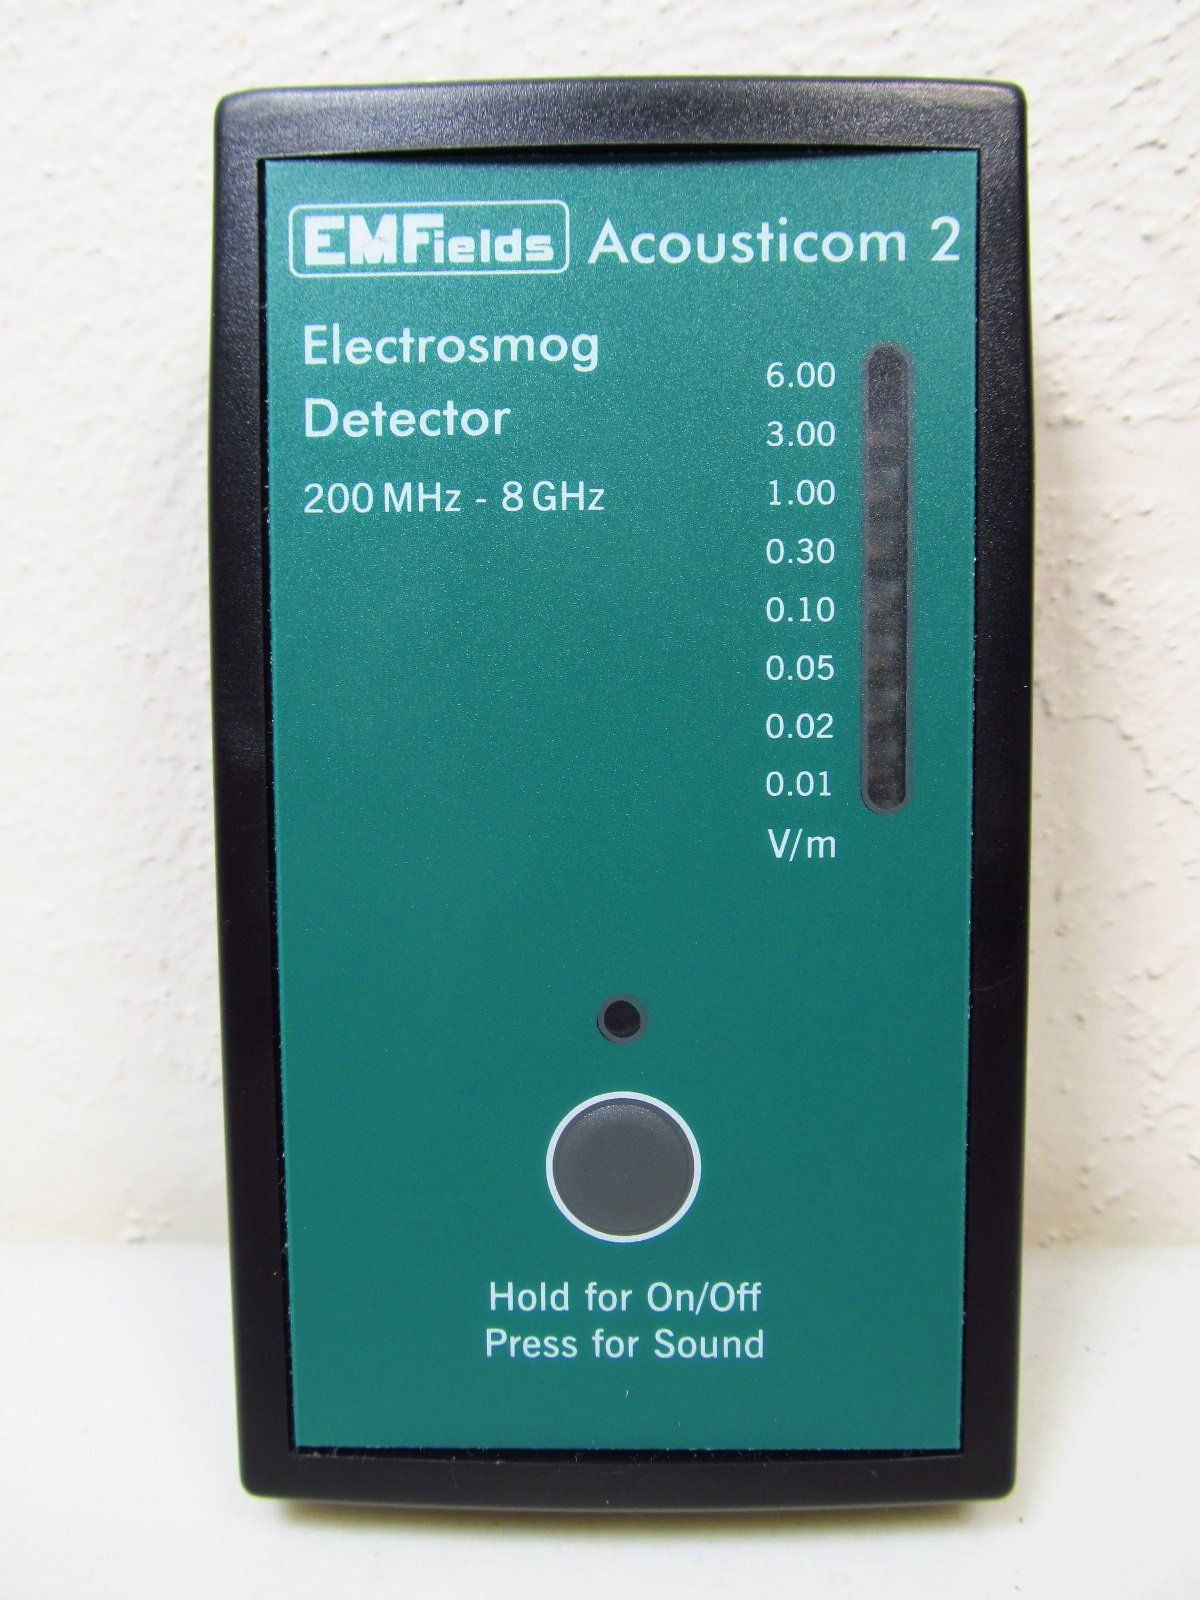 Acousticom 2 Rf Meter Radio Frequency Emf Protection Like The Small Size And Price